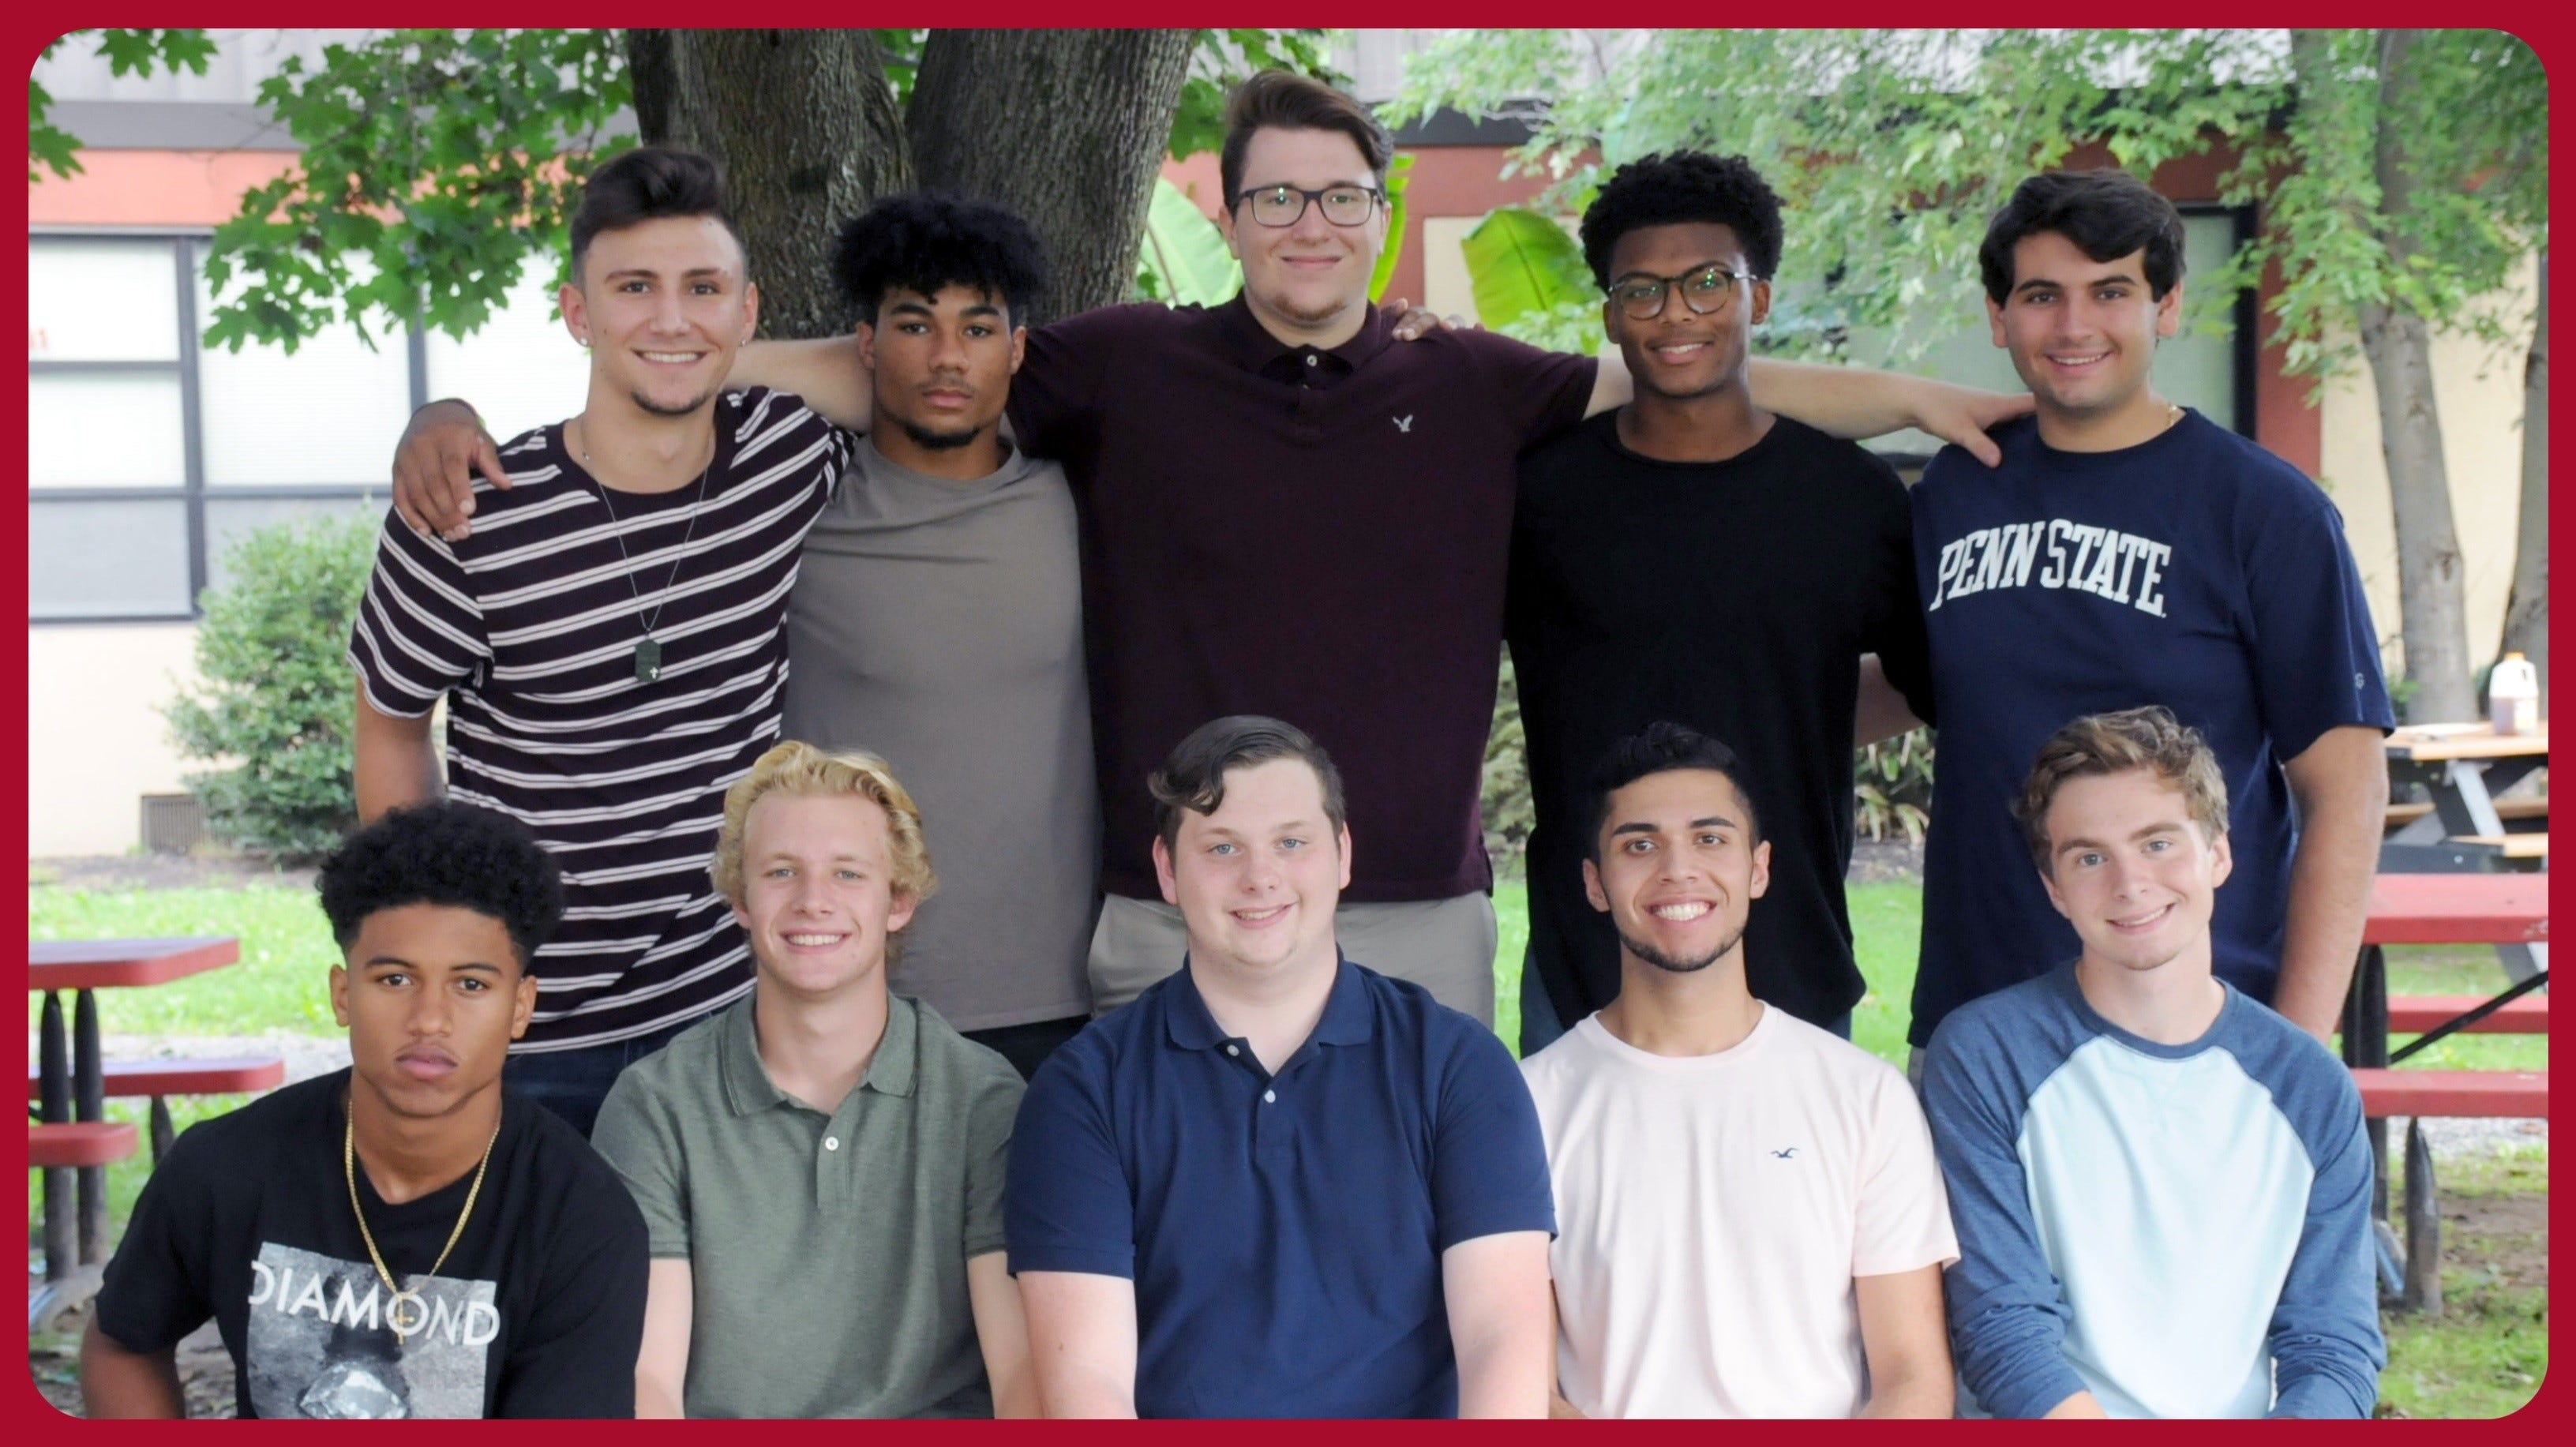 (Seated, from left) Kishawn Fentress, Frank Knapp, Aaron DiClaudio, Hector Agosto, Luke Harker, and (standing, from left) J. Scott Gebhard, Aidan Borquet, Colin Poisker, Chris Henry and Ethan Rappleye are Delsea Regional High School's Homecoming King candidates.